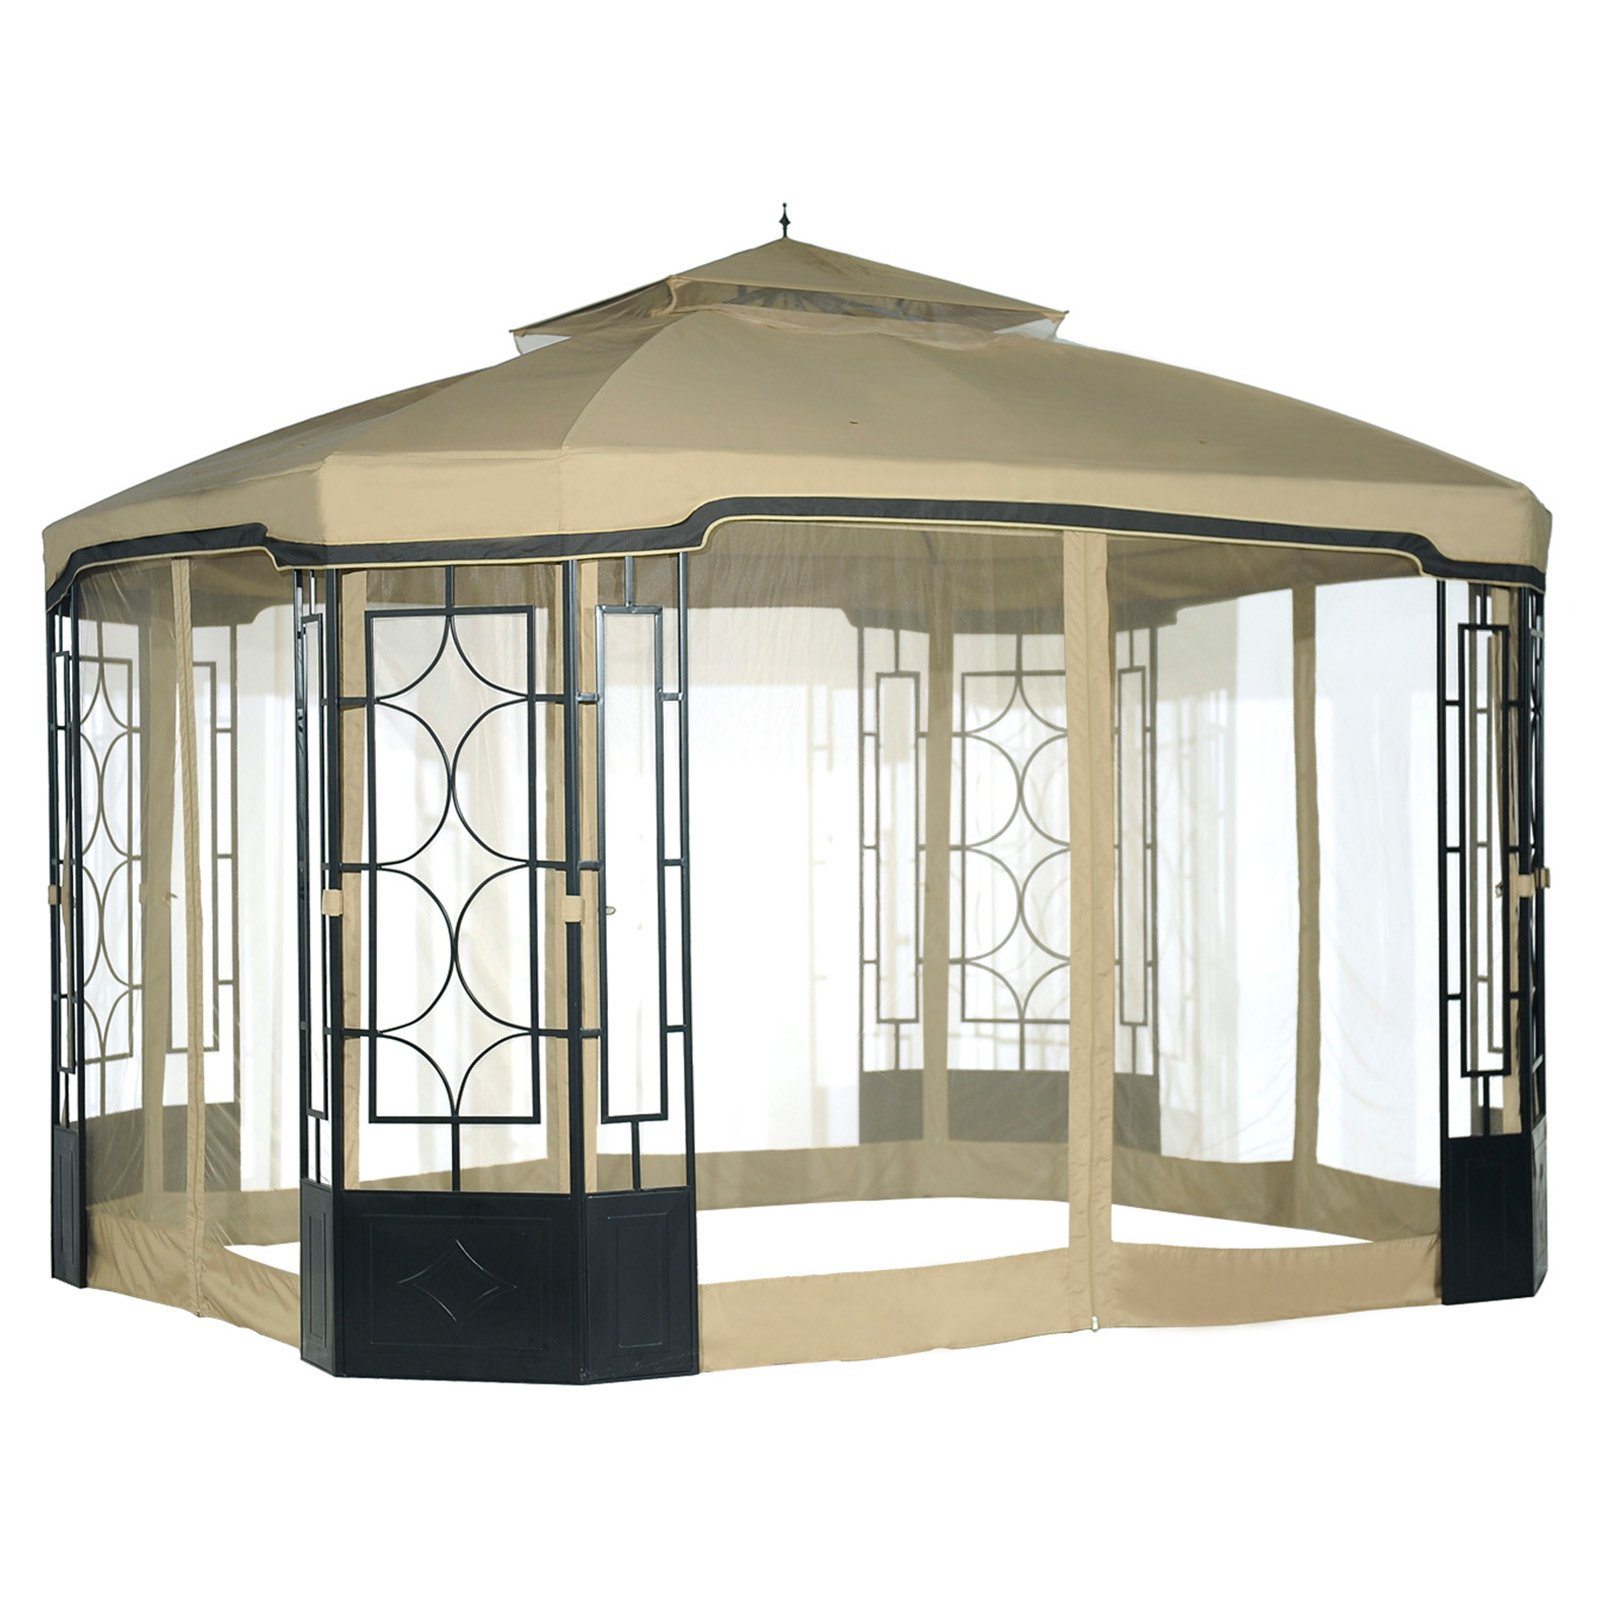 Sunjoy Mosquito Netting for 10 x 12 ft. Alcove Gazebo by